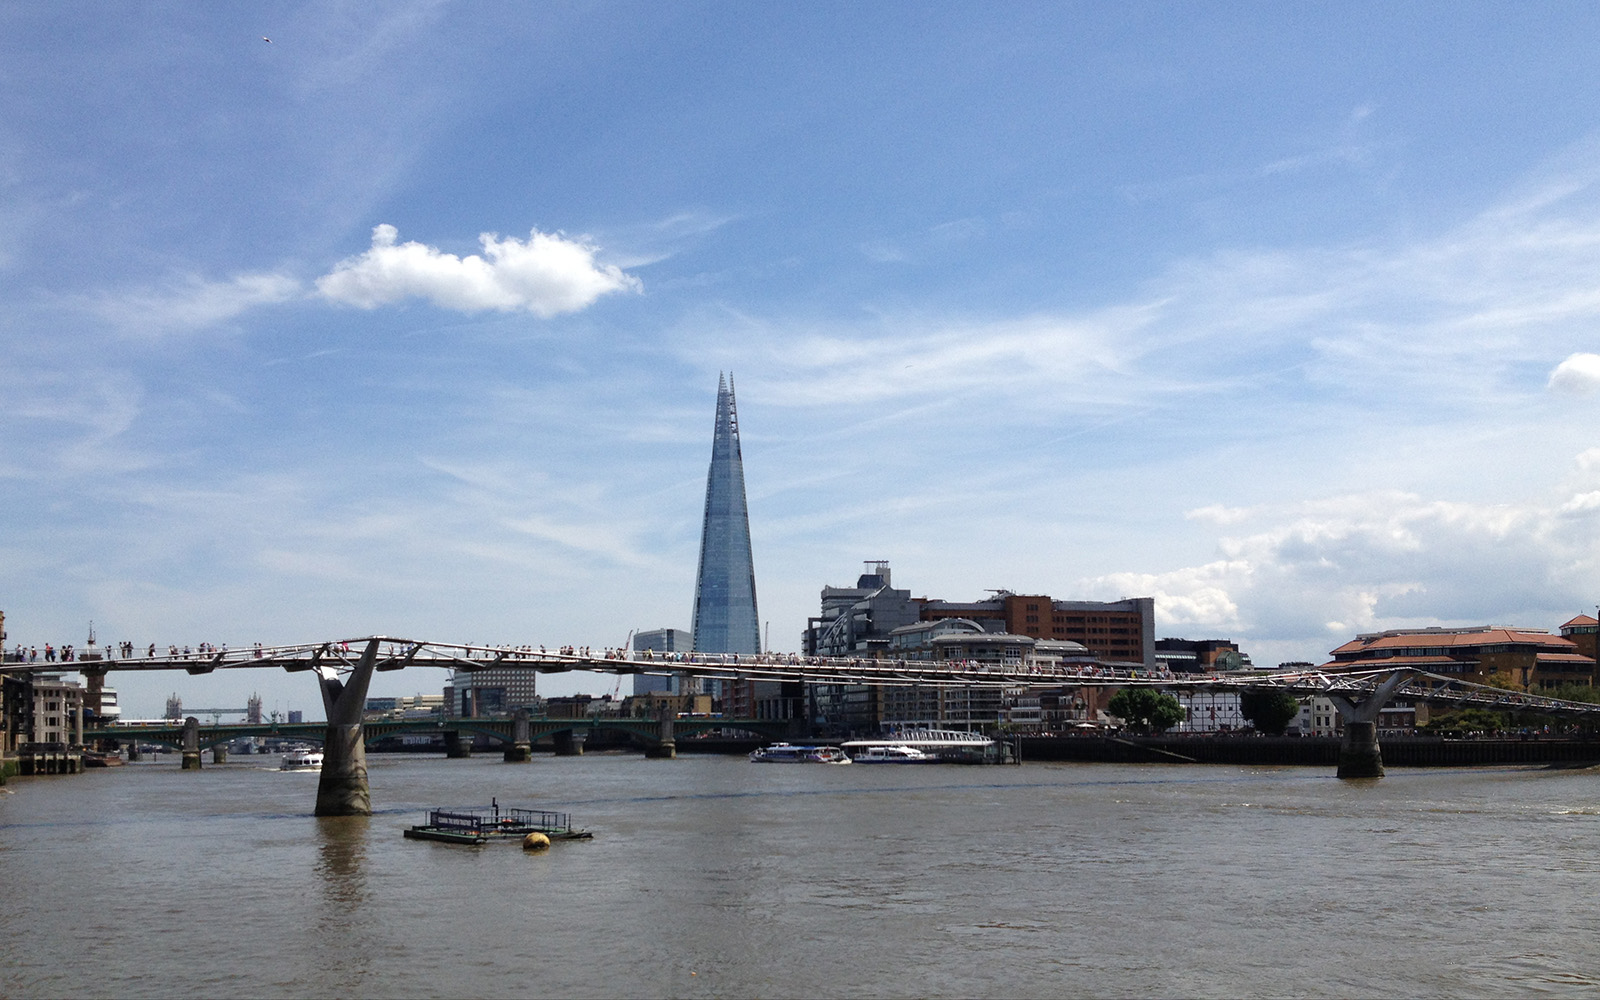 Millennium Bridge and The Shard, summer 2014